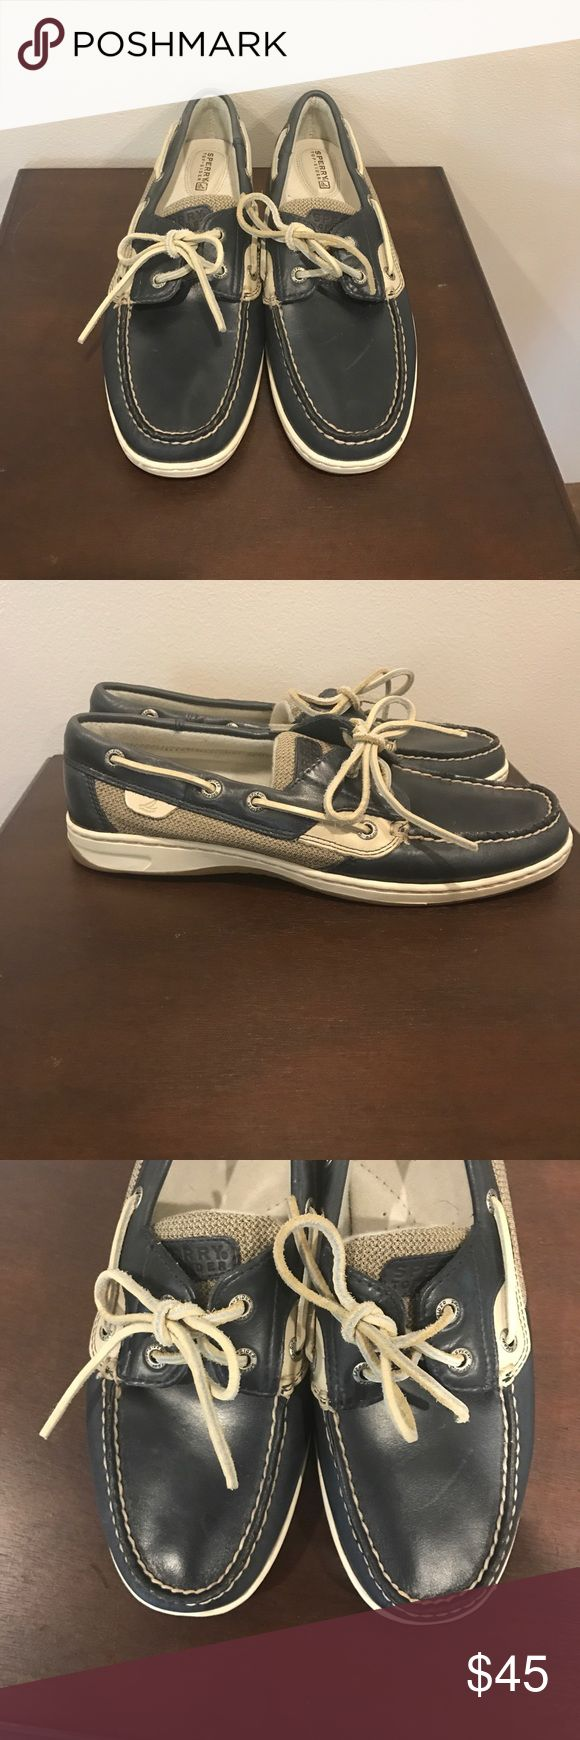 Sperry Topsider Women's Boat Shoe Size 9 Beautiful preloved but in Nearly New condition Sperry Topsiders. These Topsiders are a size 9. The only flaw is one scuff on top of the shoe as shown in the third picture. If you have any questions please ask 💕 Sperry Top-Sider Shoes Flats & Loafers